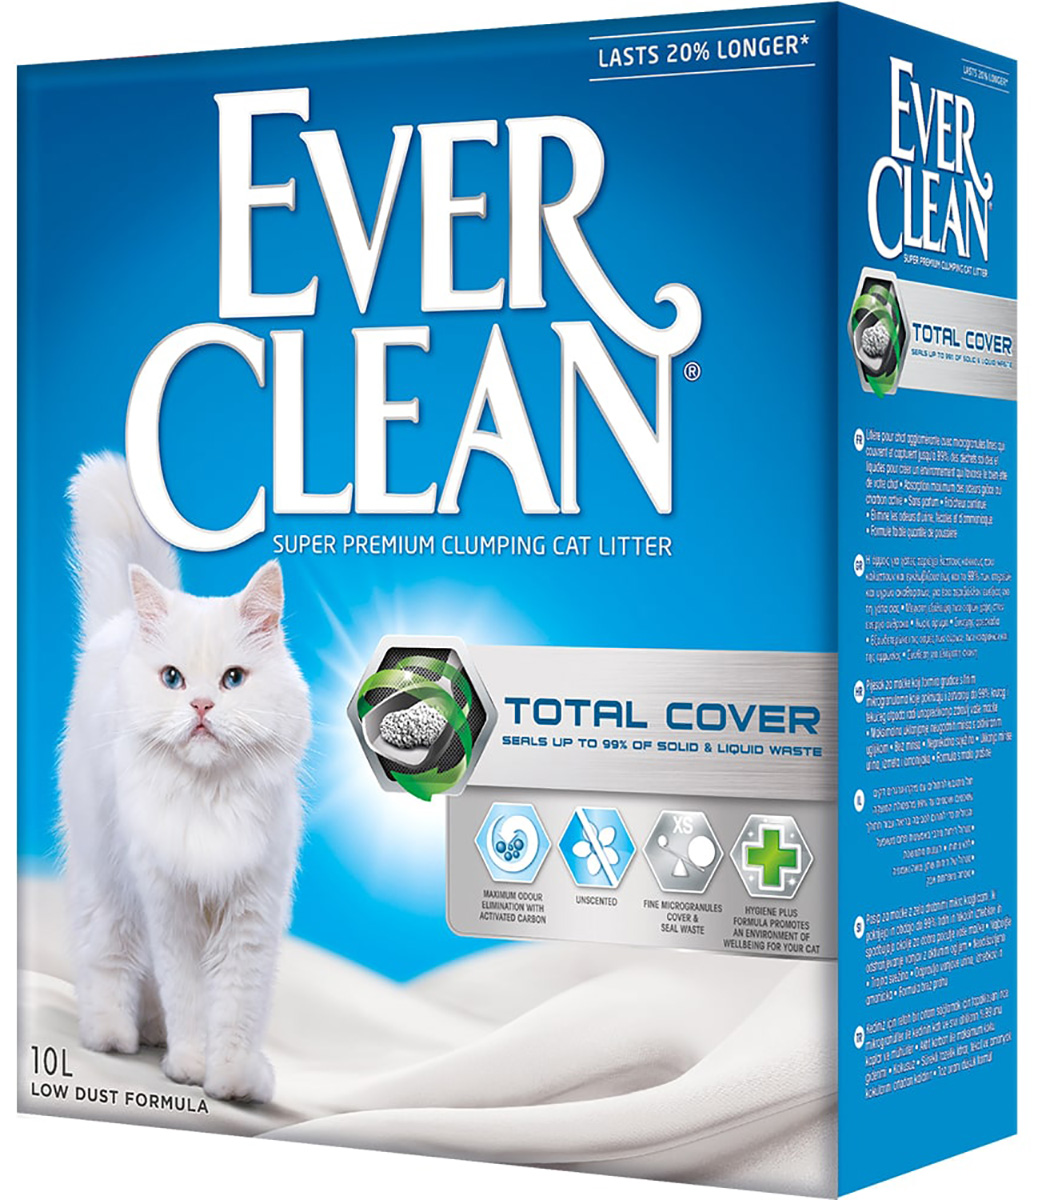 Ever Clean Total Cover наполнитель комкующийся для туалета кошек с микрогранулами двойного действия (10 л)